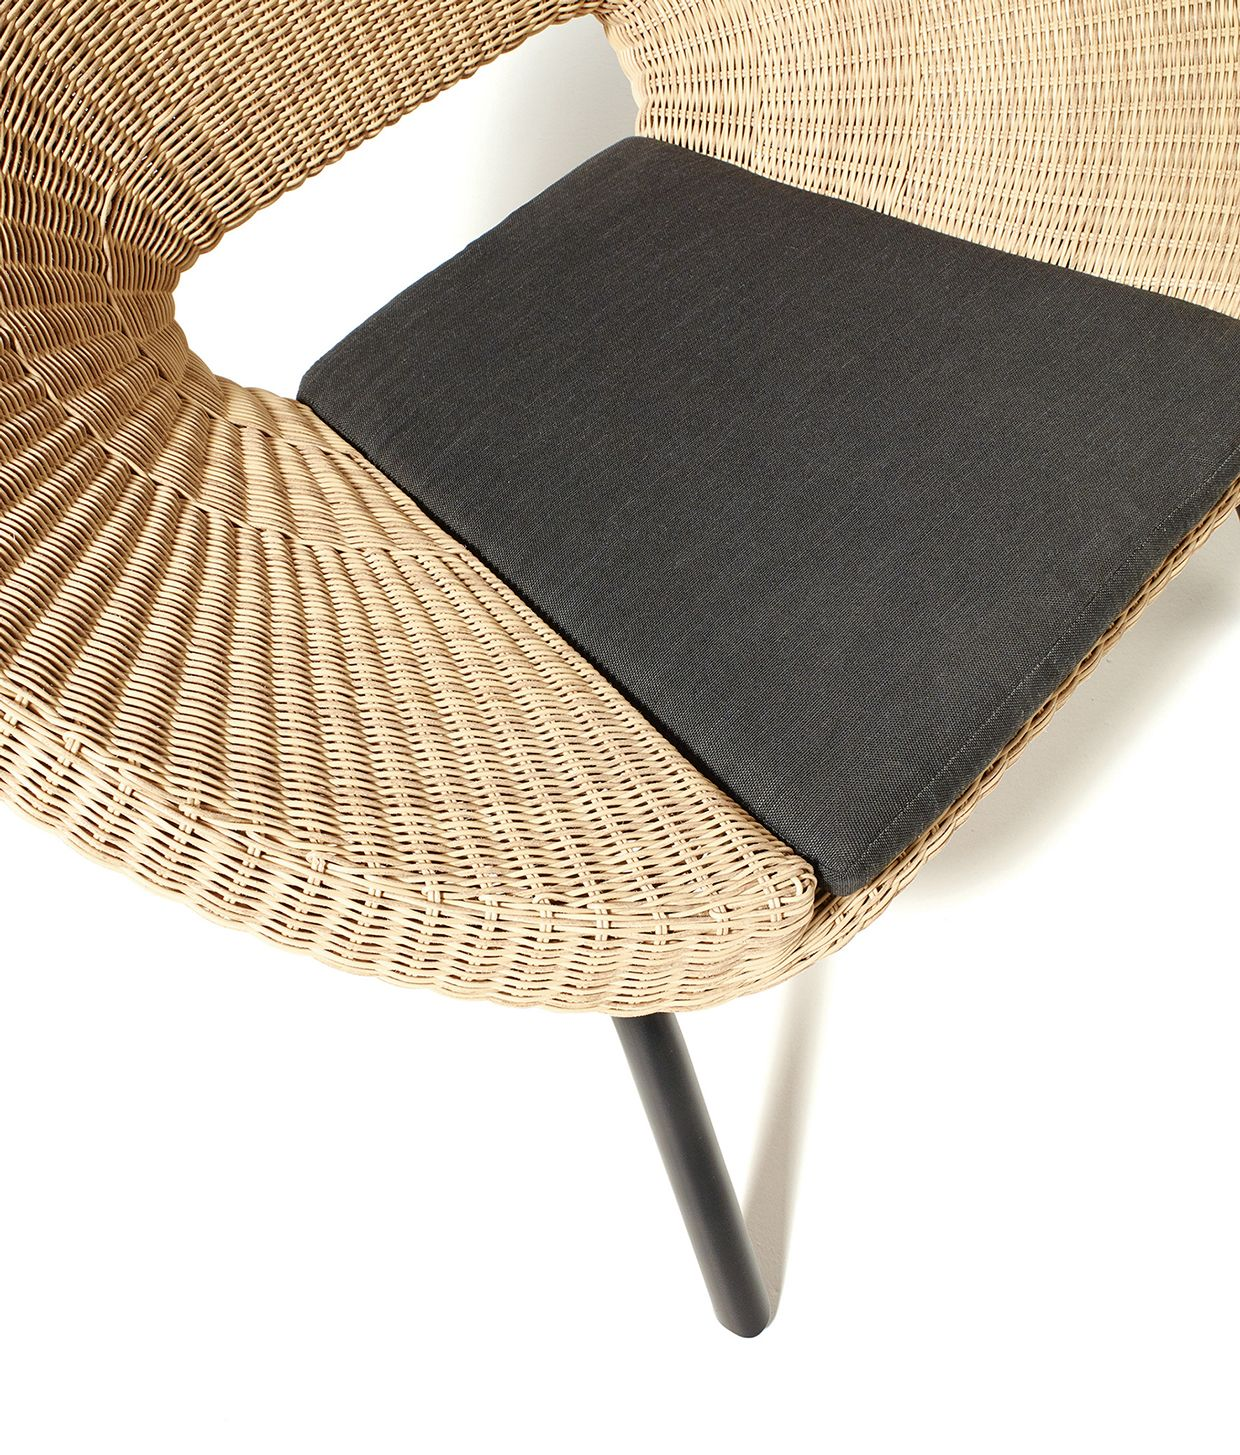 Loa Outdoor furniture for BLOOMA by Kingfisher Sourcing & Offer ...